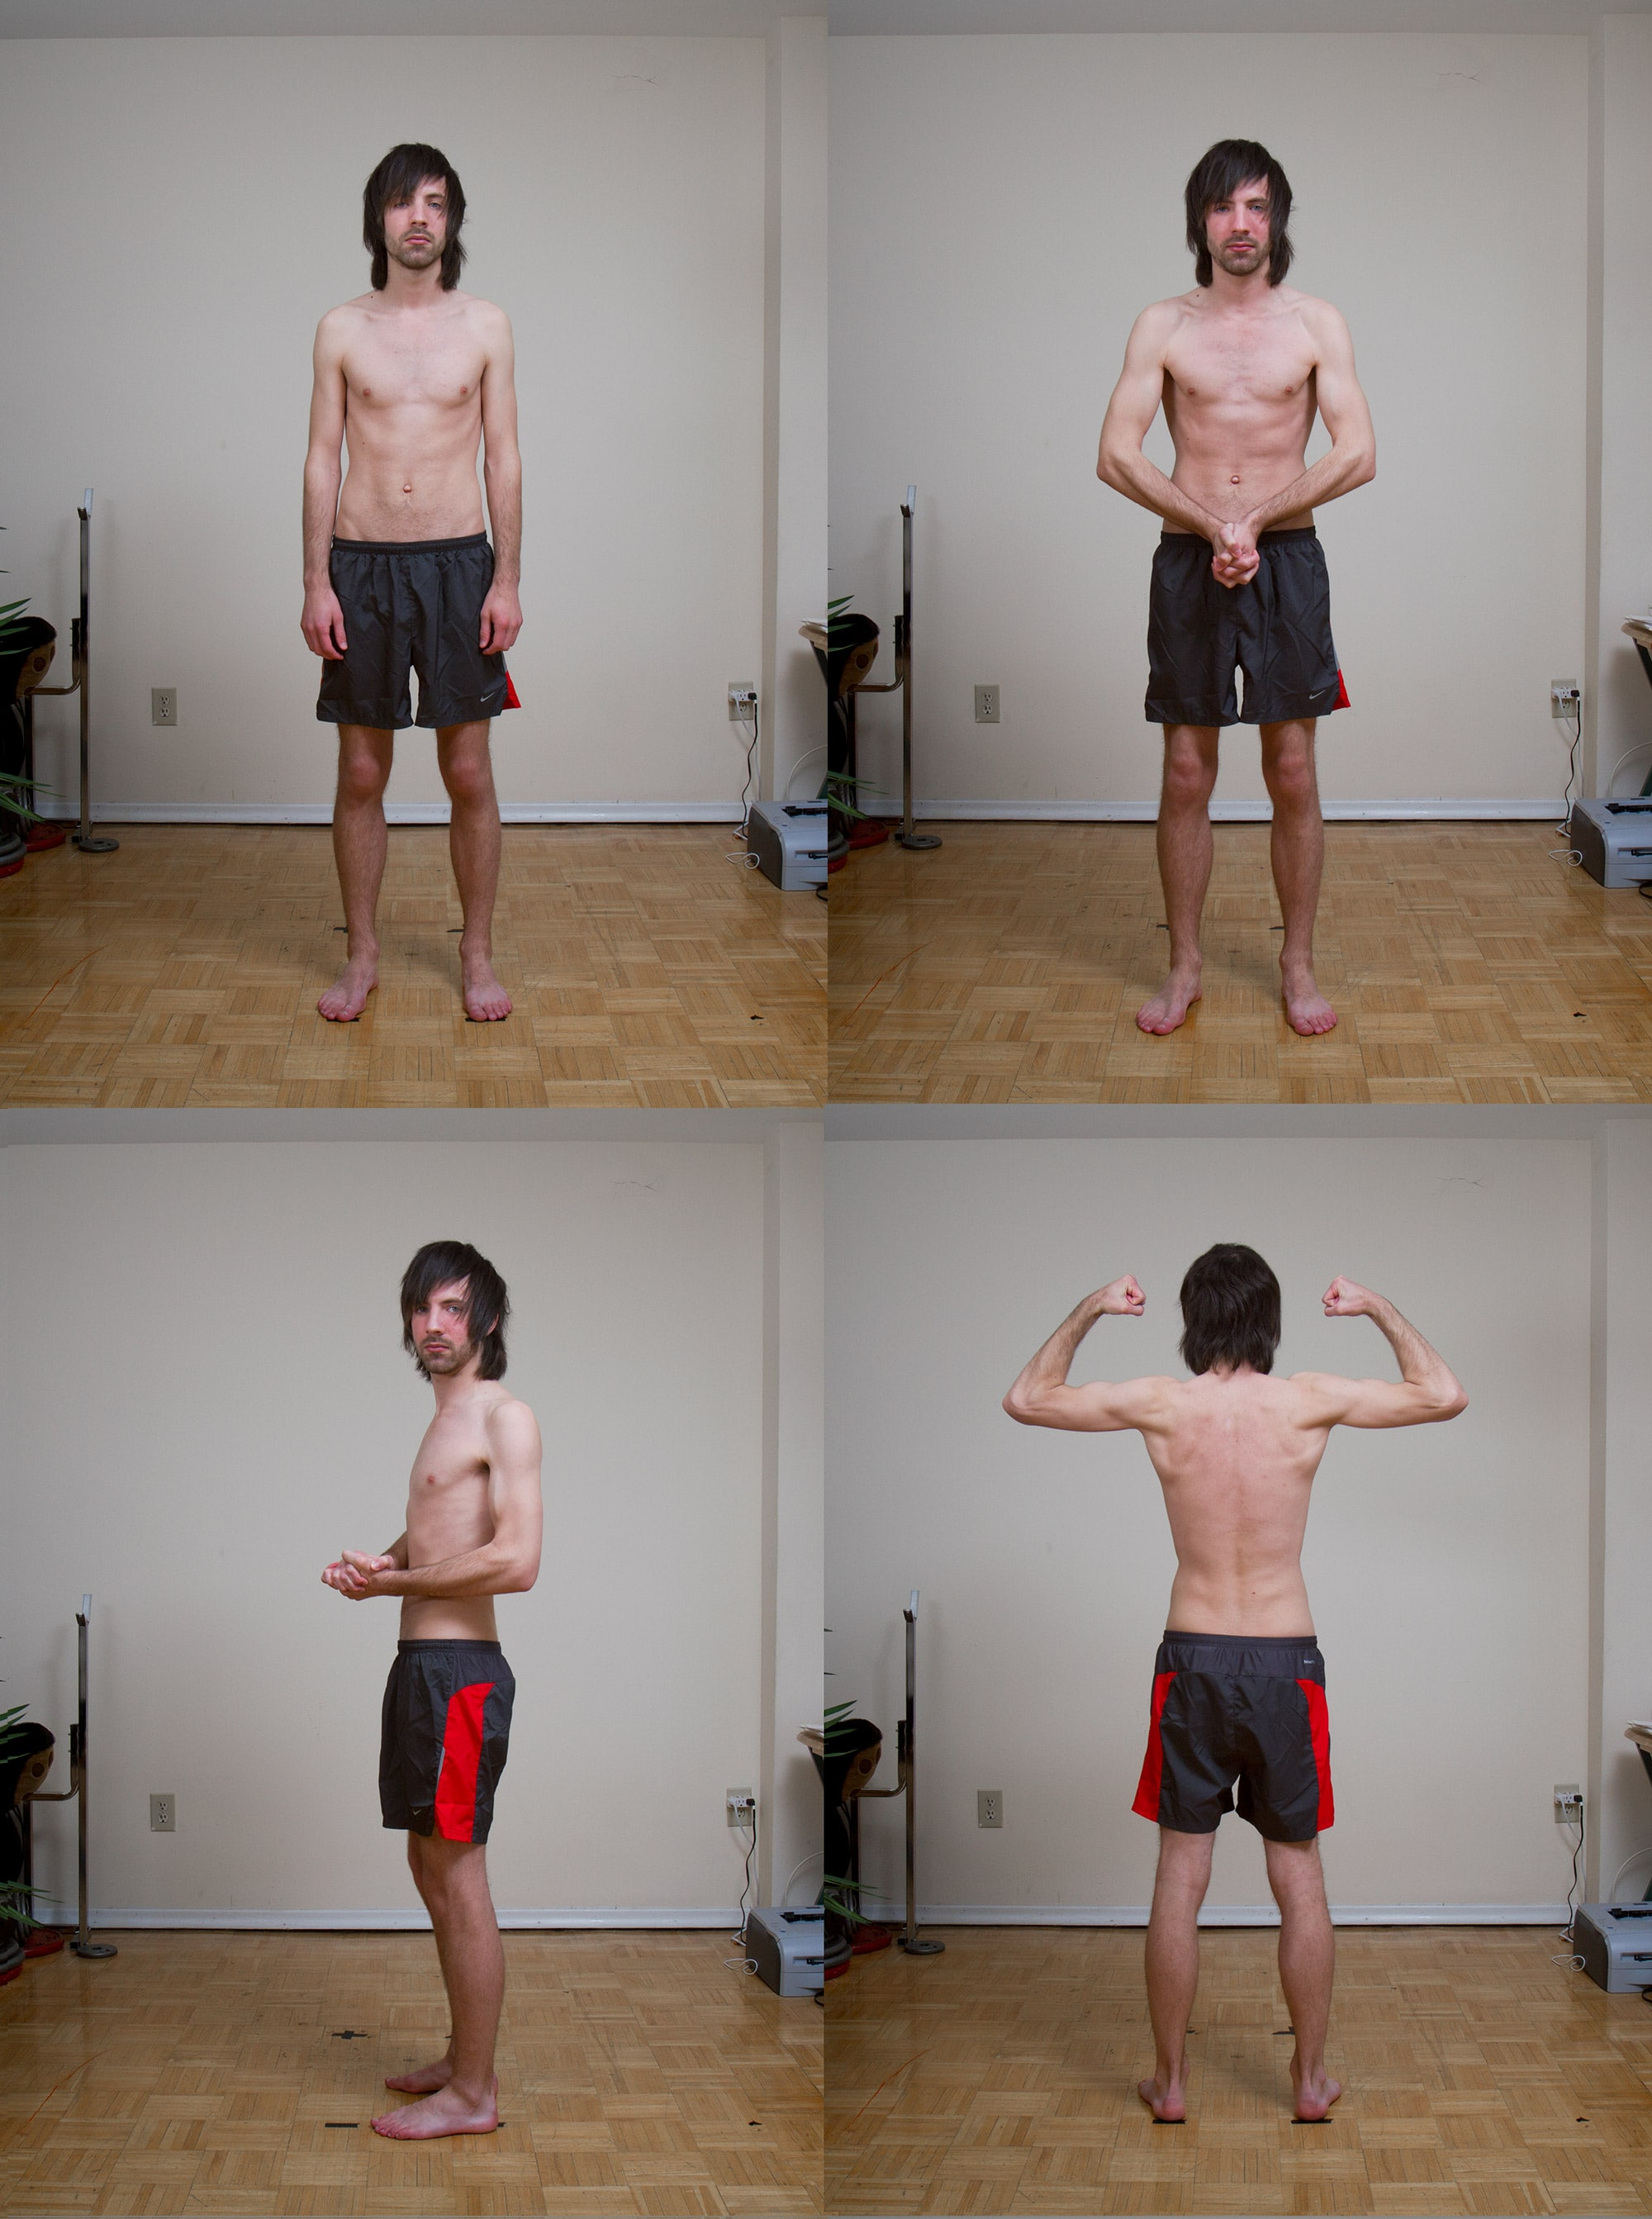 My before photos